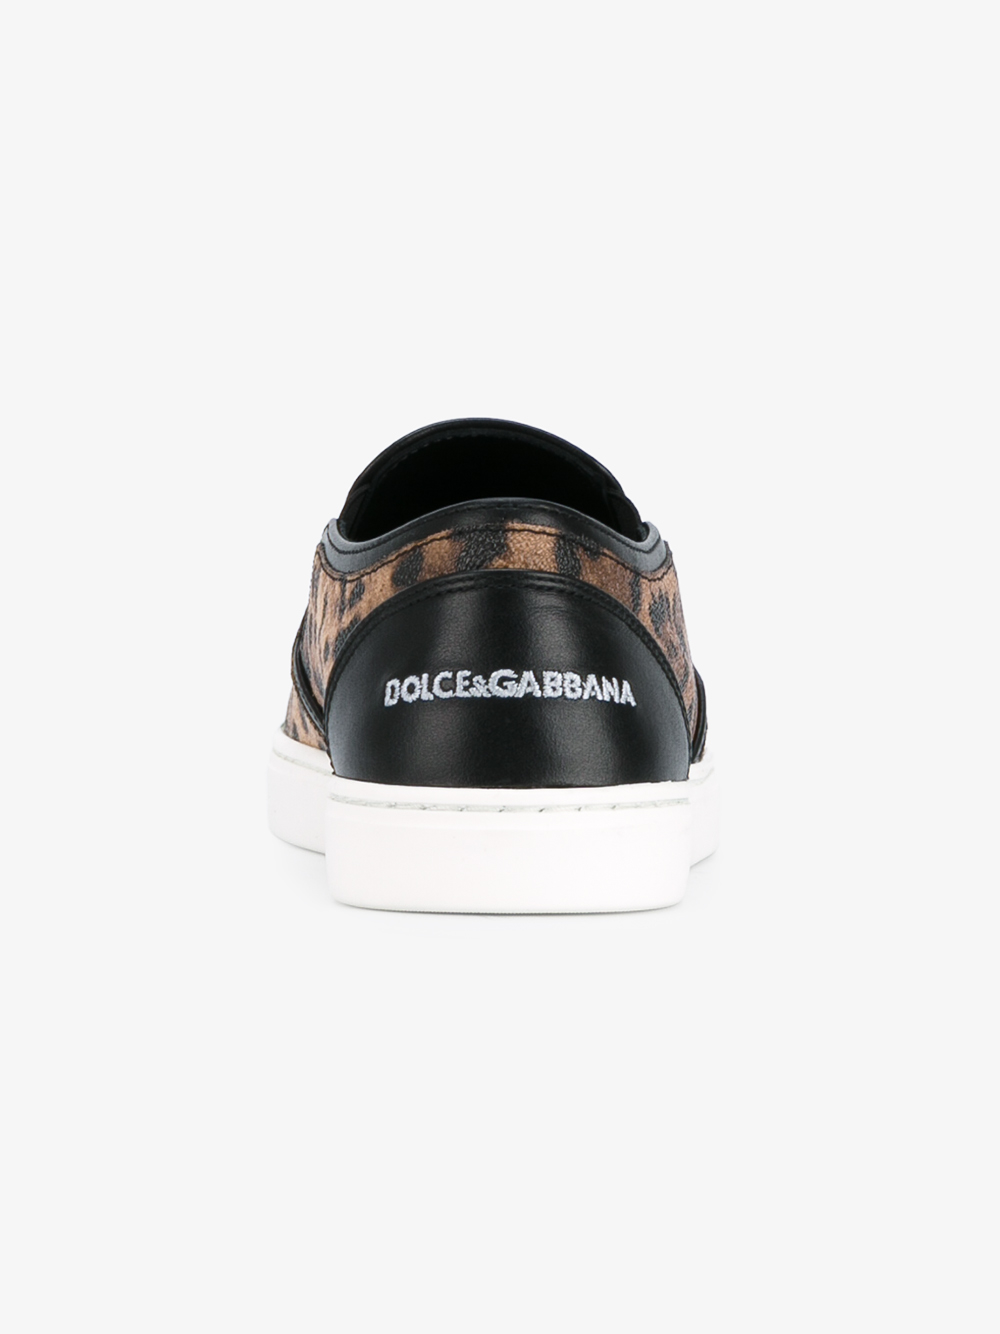 Dolce & Gabbana Leather Leopard-printed Slip-on Sneakers in Brown